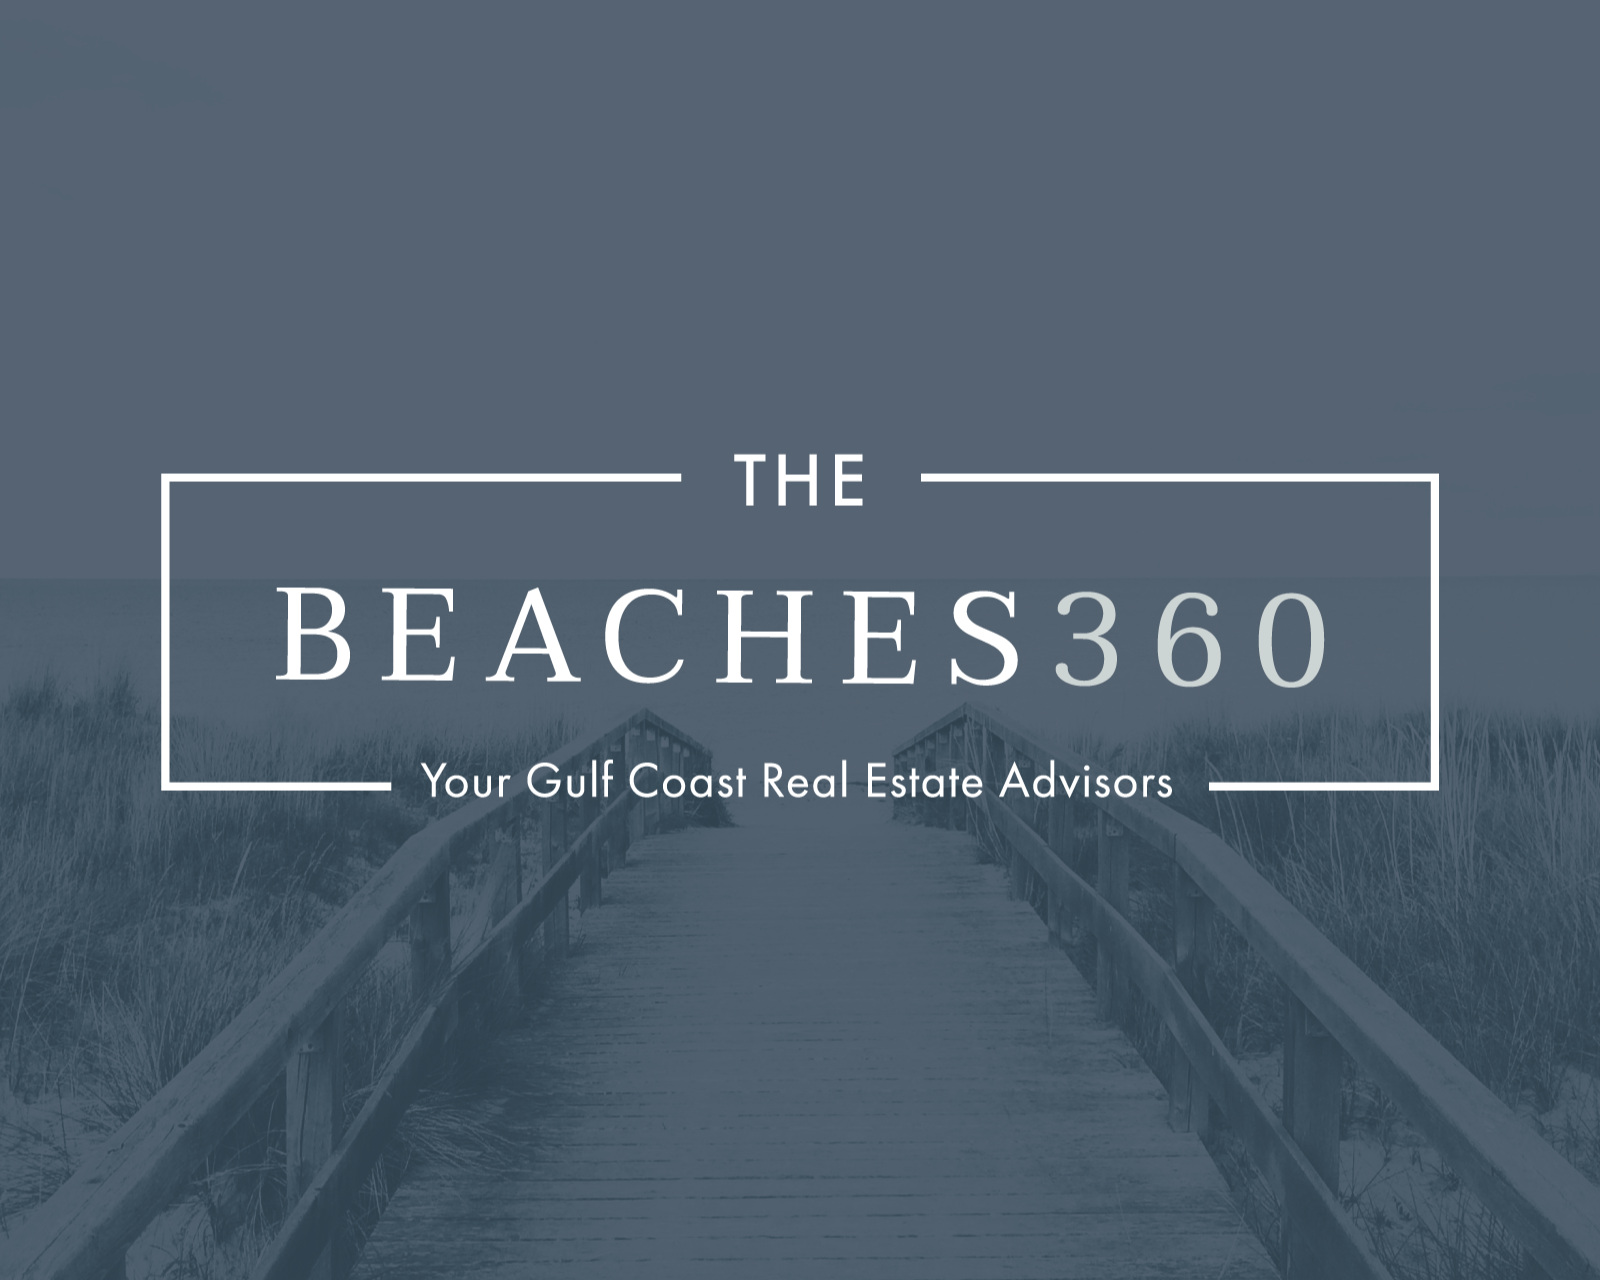 The Beaches 360